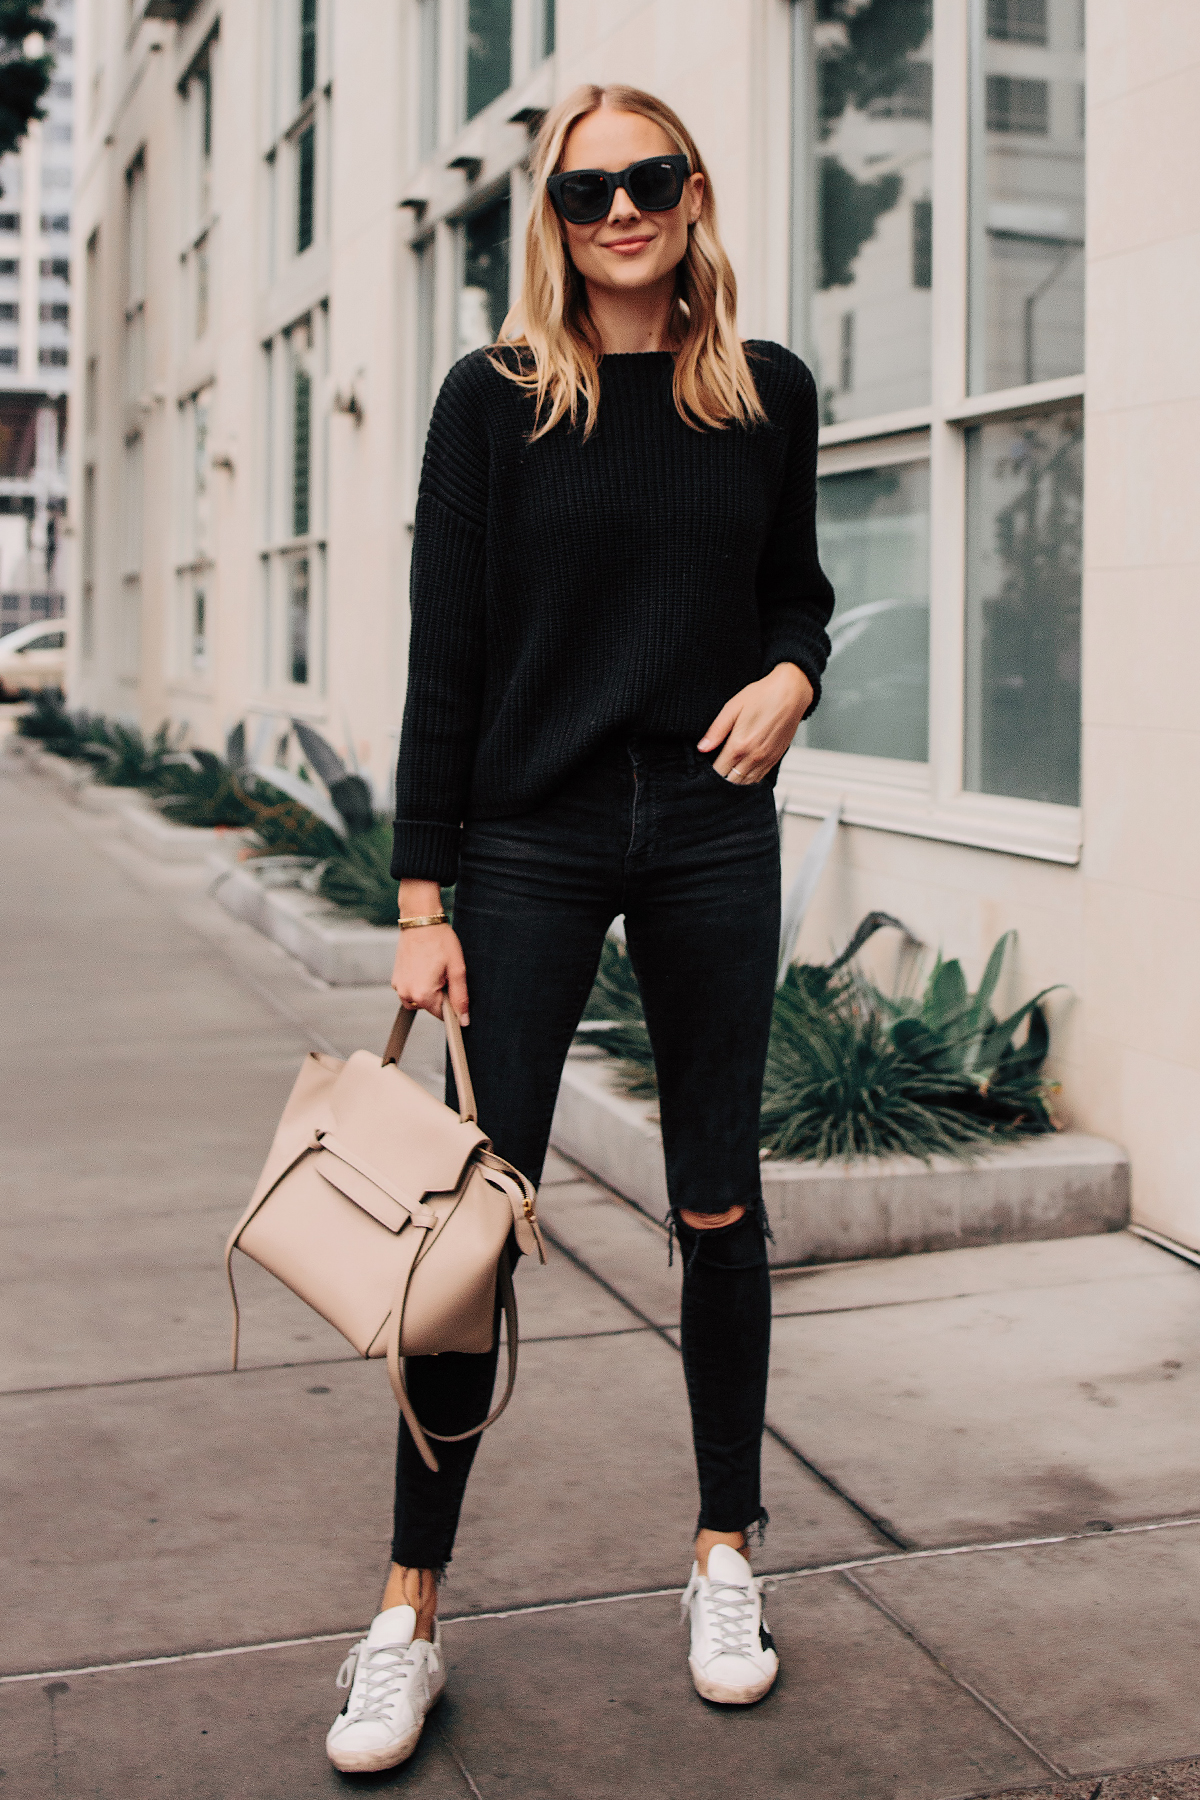 Blonde Woman Wearing Black Oversized Sweater Madewell Black Ripped Skinny Jeans Outfit Golden Goose Sneakers Celine Mini Belt Bag Fashion Jackson San Diego Fashion Blogger Street Style